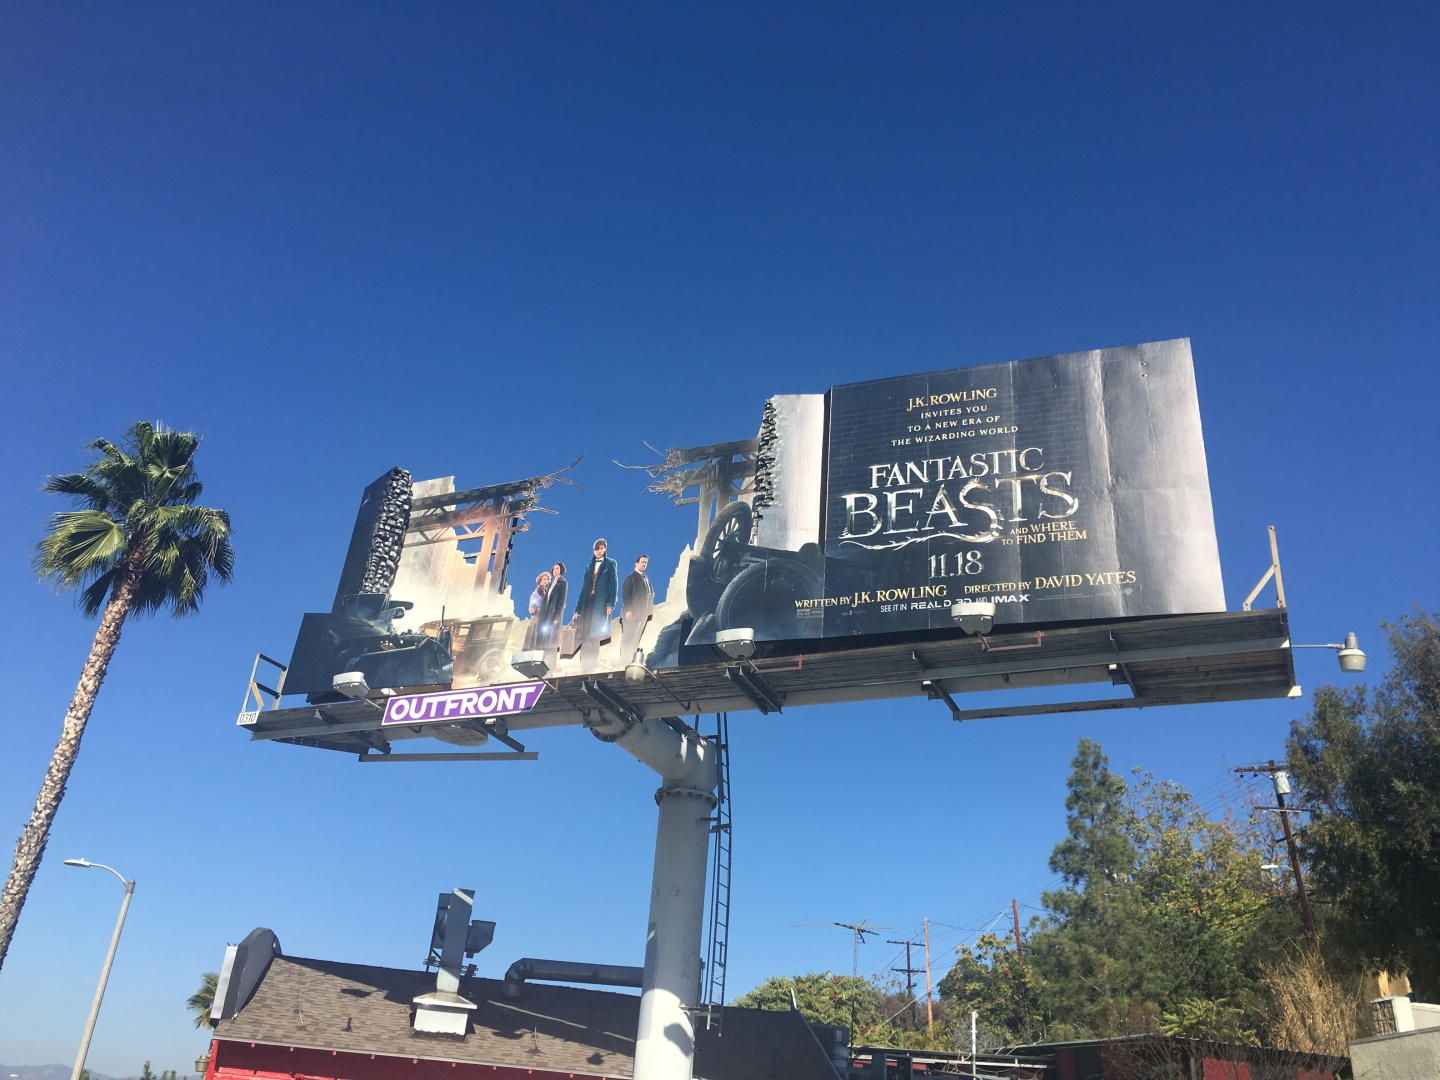 Fantastic Beasts and Where to Find Them, 3D Billboard Thumbnail